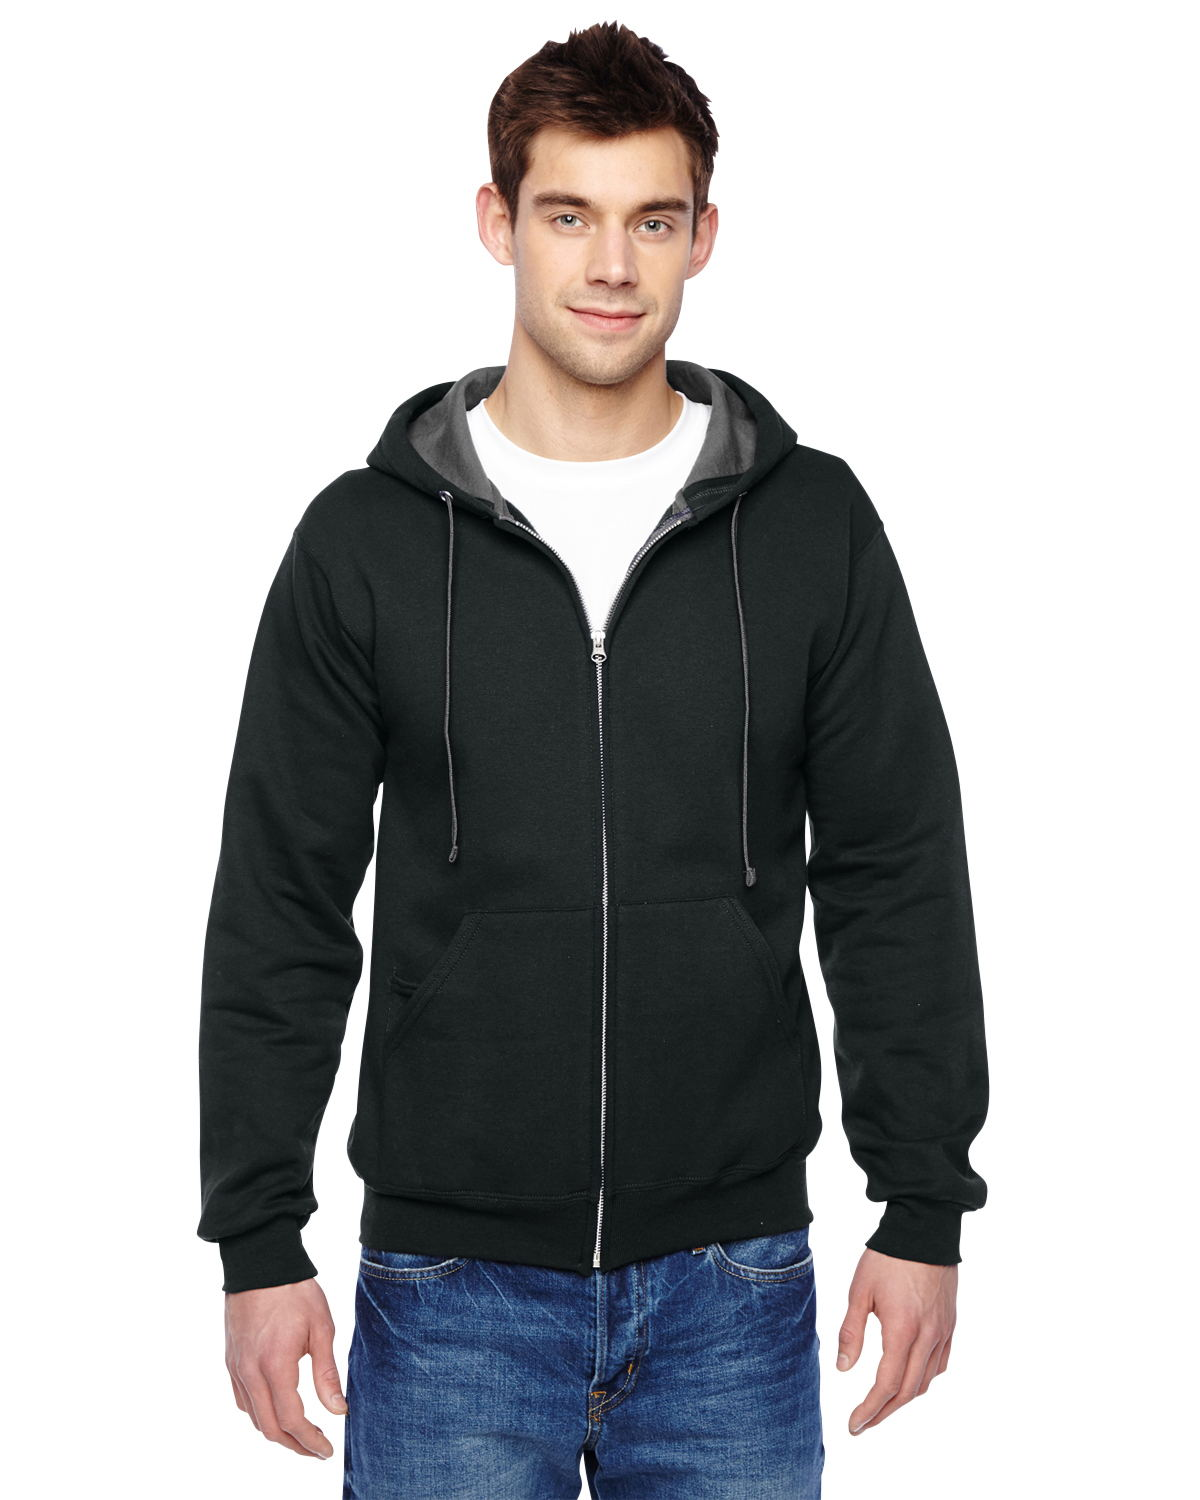 Fruit of the Loom SF73R - 7.2 oz. Sofspun Full-Zip Hooded ...